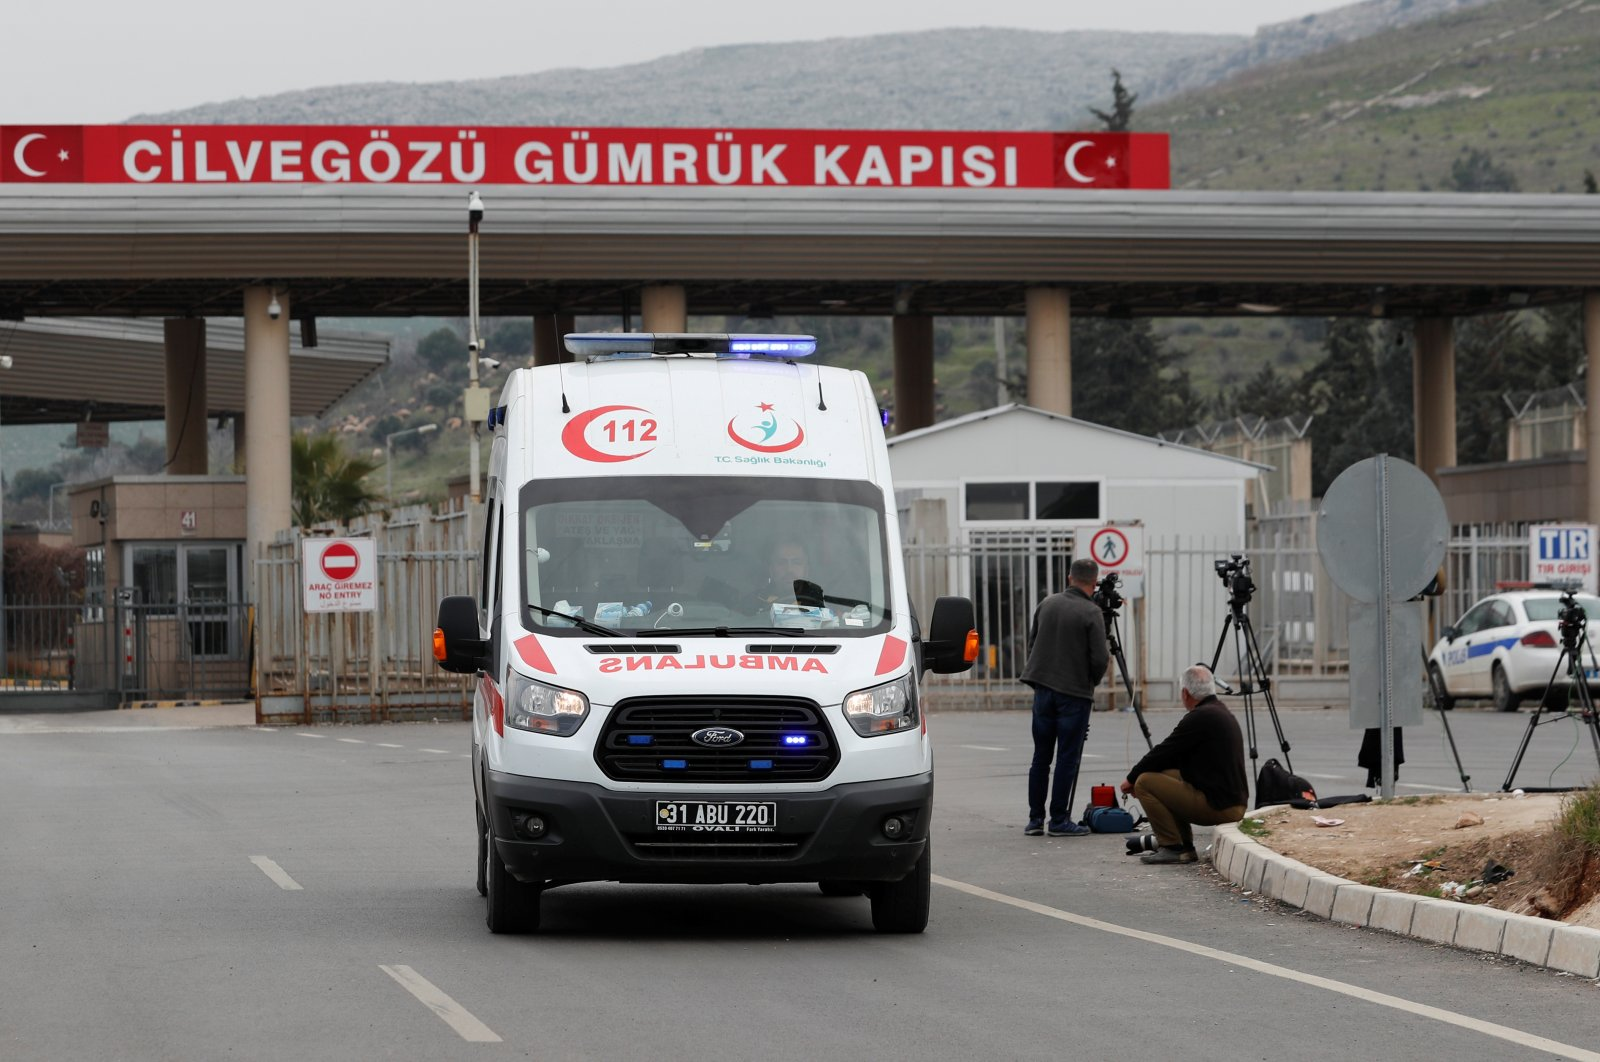 An ambulance returns from the Syrian site through the Cilvegözü border gate, located opposite the Syrian commercial crossing point Bab al-Hawa, in Reyhanlı, Hatay province, Turkey, February 28, 2020. (Reuters Photo)